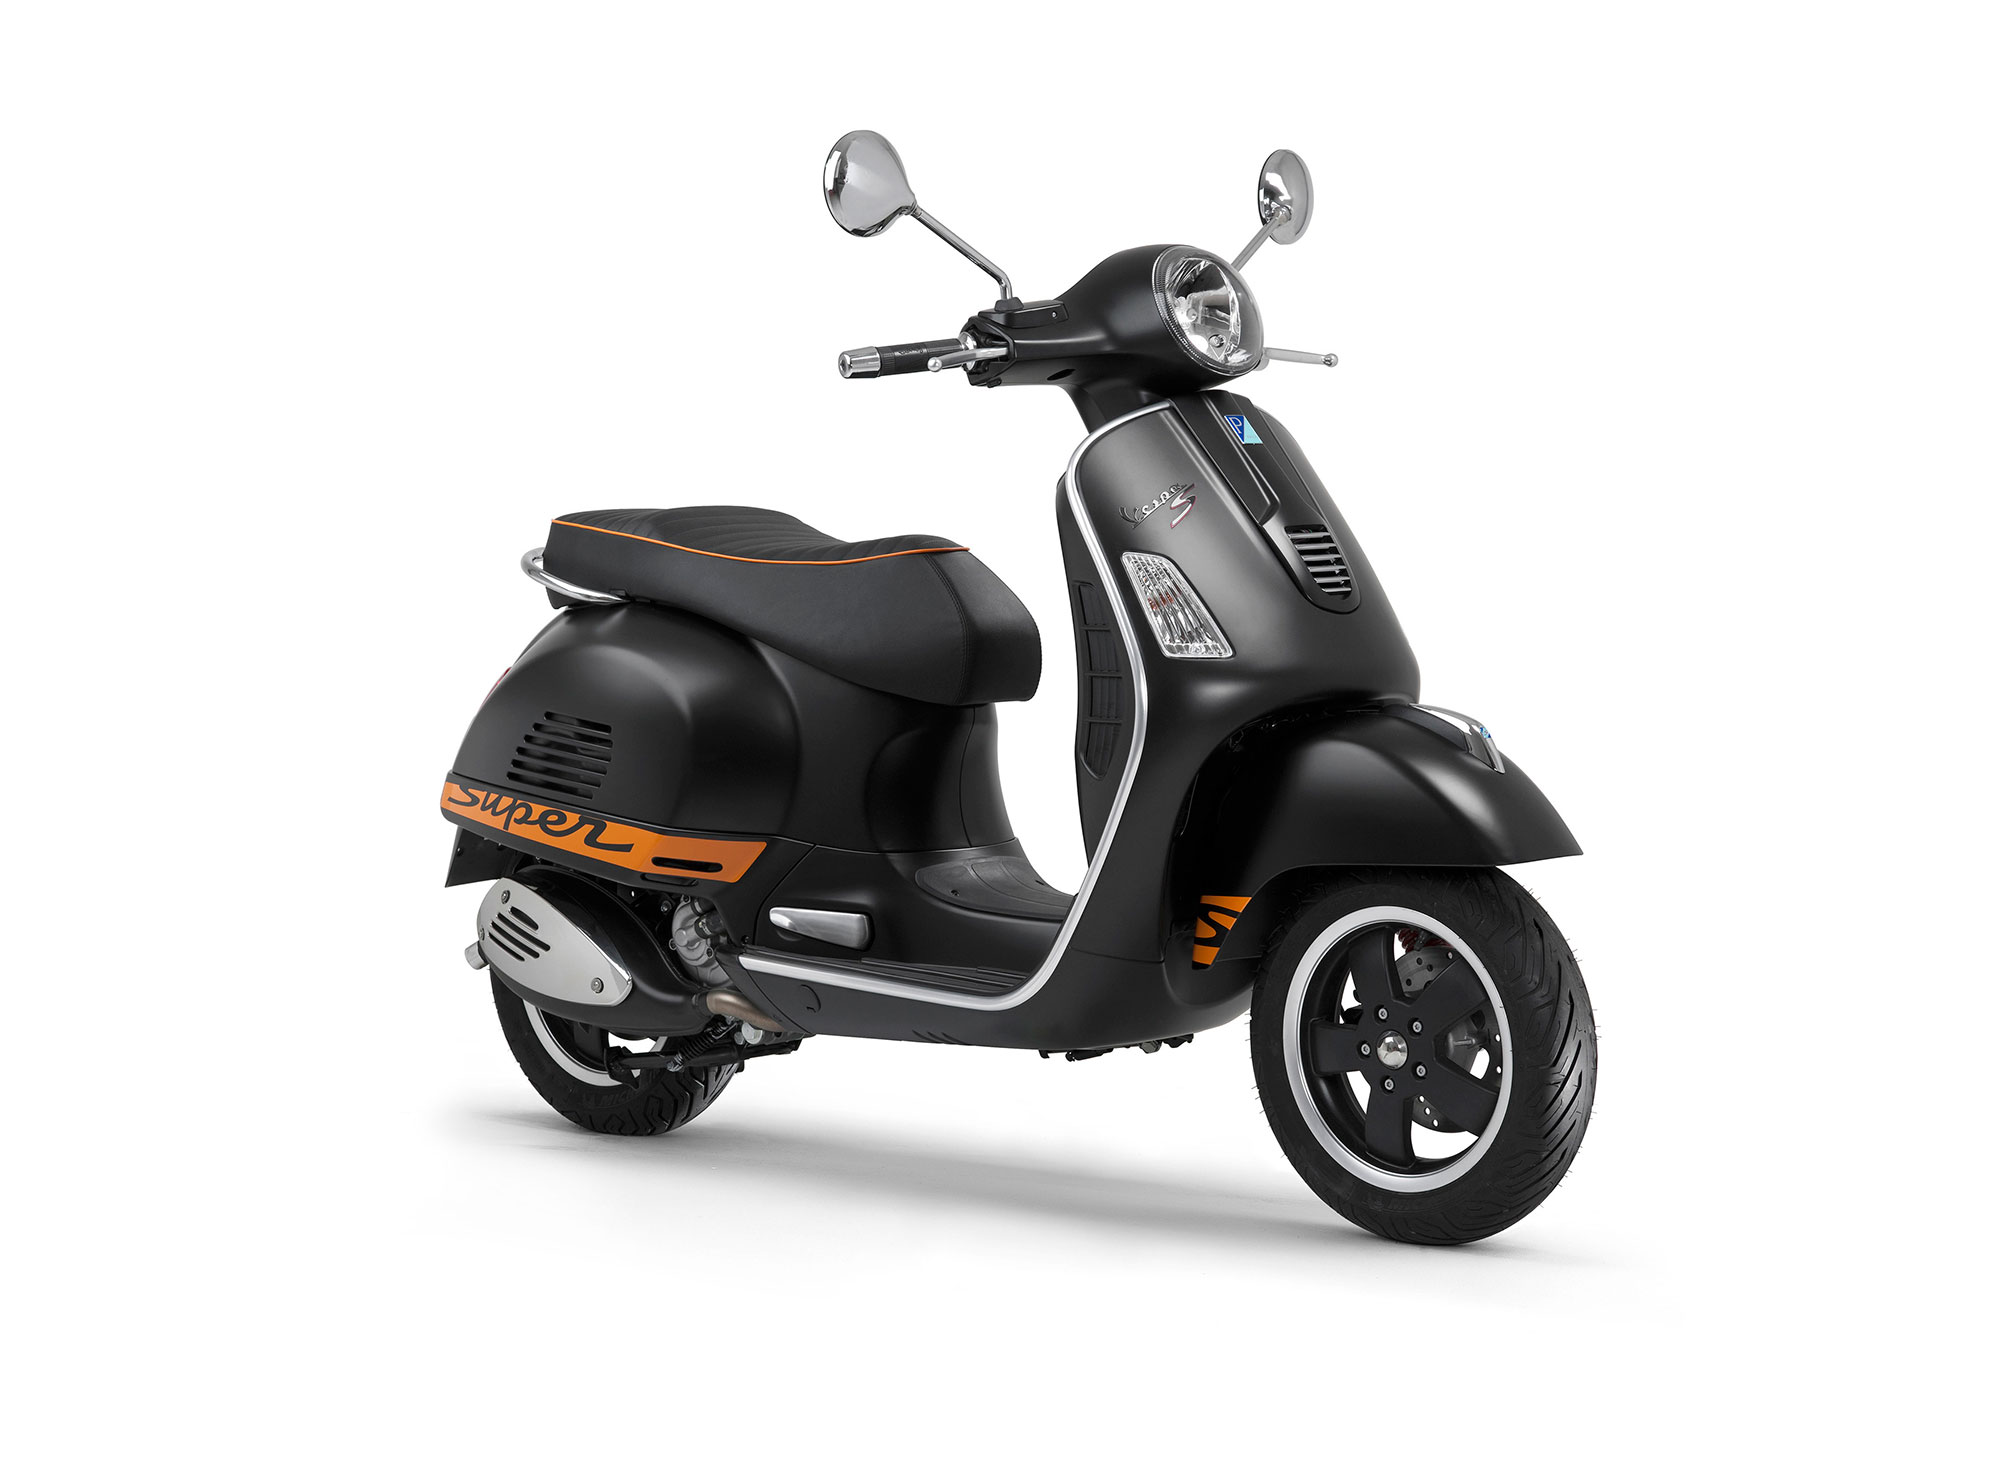 vespa gts 300 i e super sport se specs 2013 2014. Black Bedroom Furniture Sets. Home Design Ideas